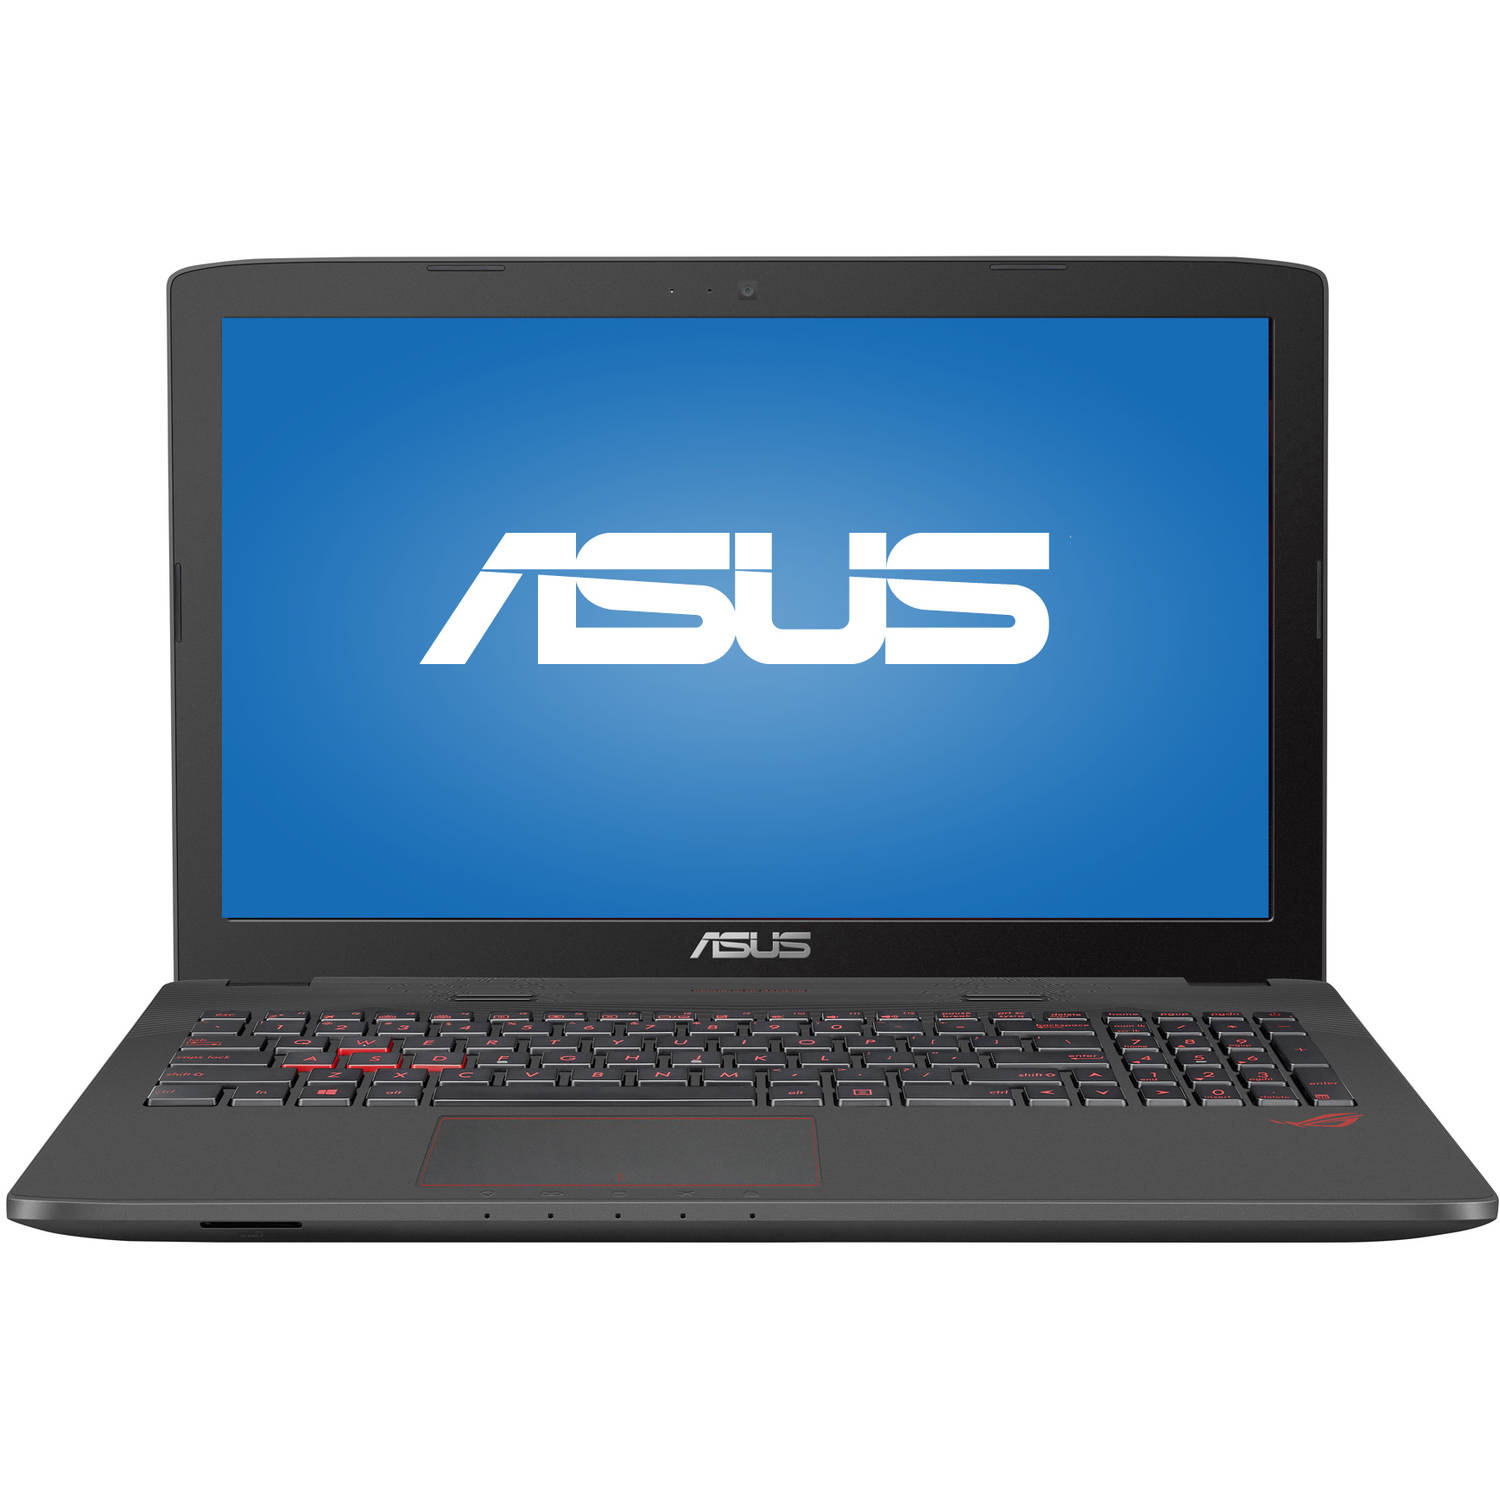 "ASUS Metallic 17.3"" GL752VW-DH71 Laptop PC with Intel Core i7-6700HQ Processor, 16GB Memory, 1TB Hard Drive and Windows 10"